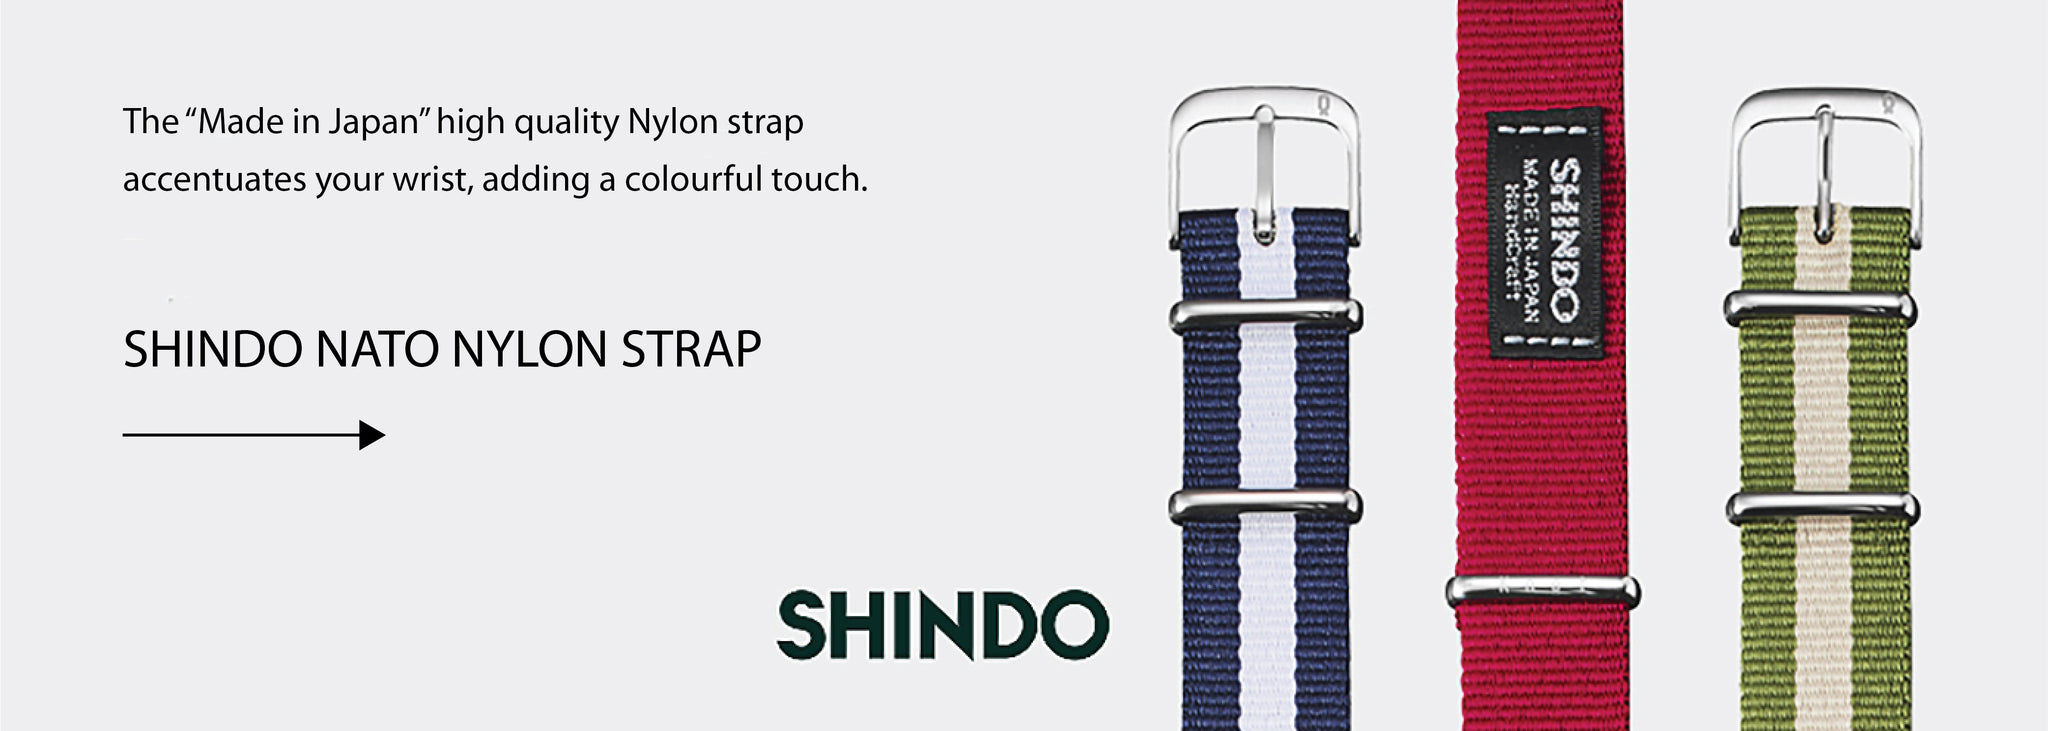 shined_nylon_strap